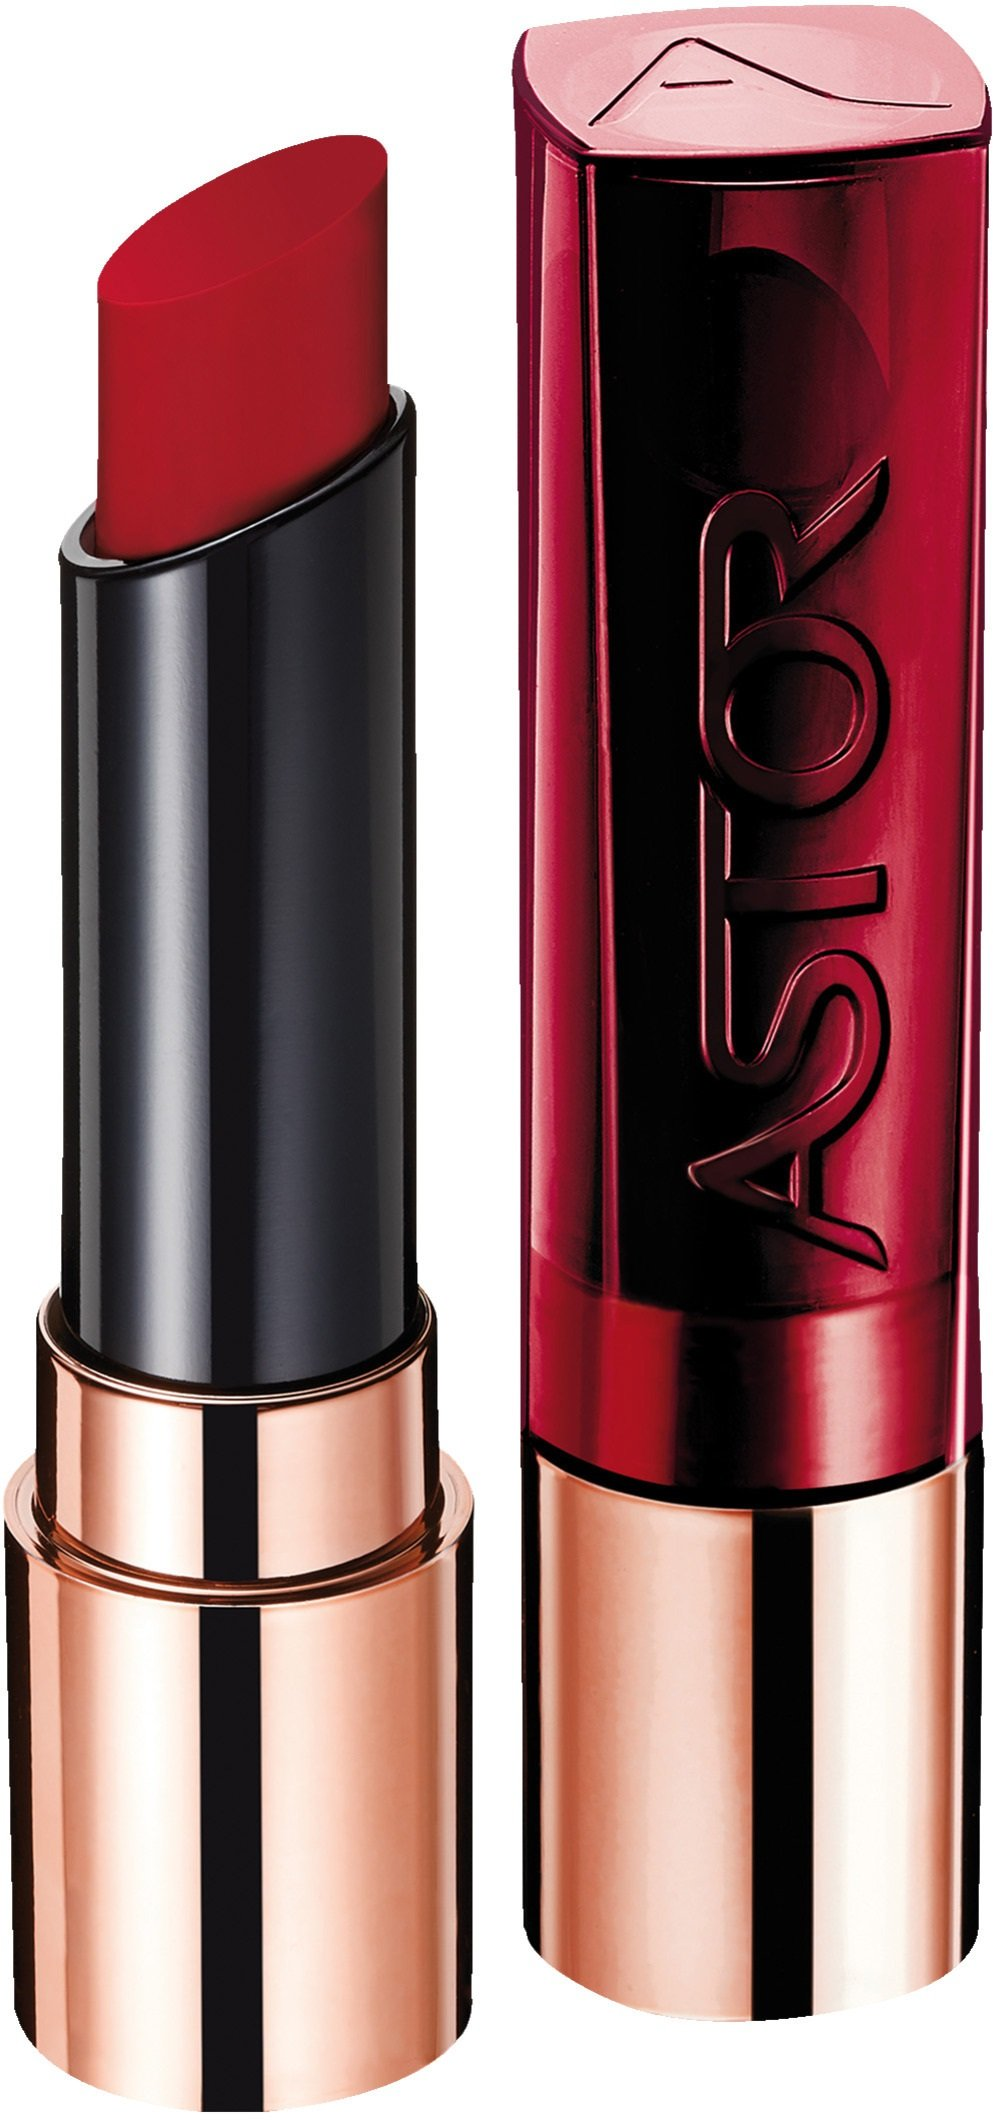 Astor Perfect Stay Fabulous Matte Barra de Labios Tono 500 Daning Berry - 19 gr product